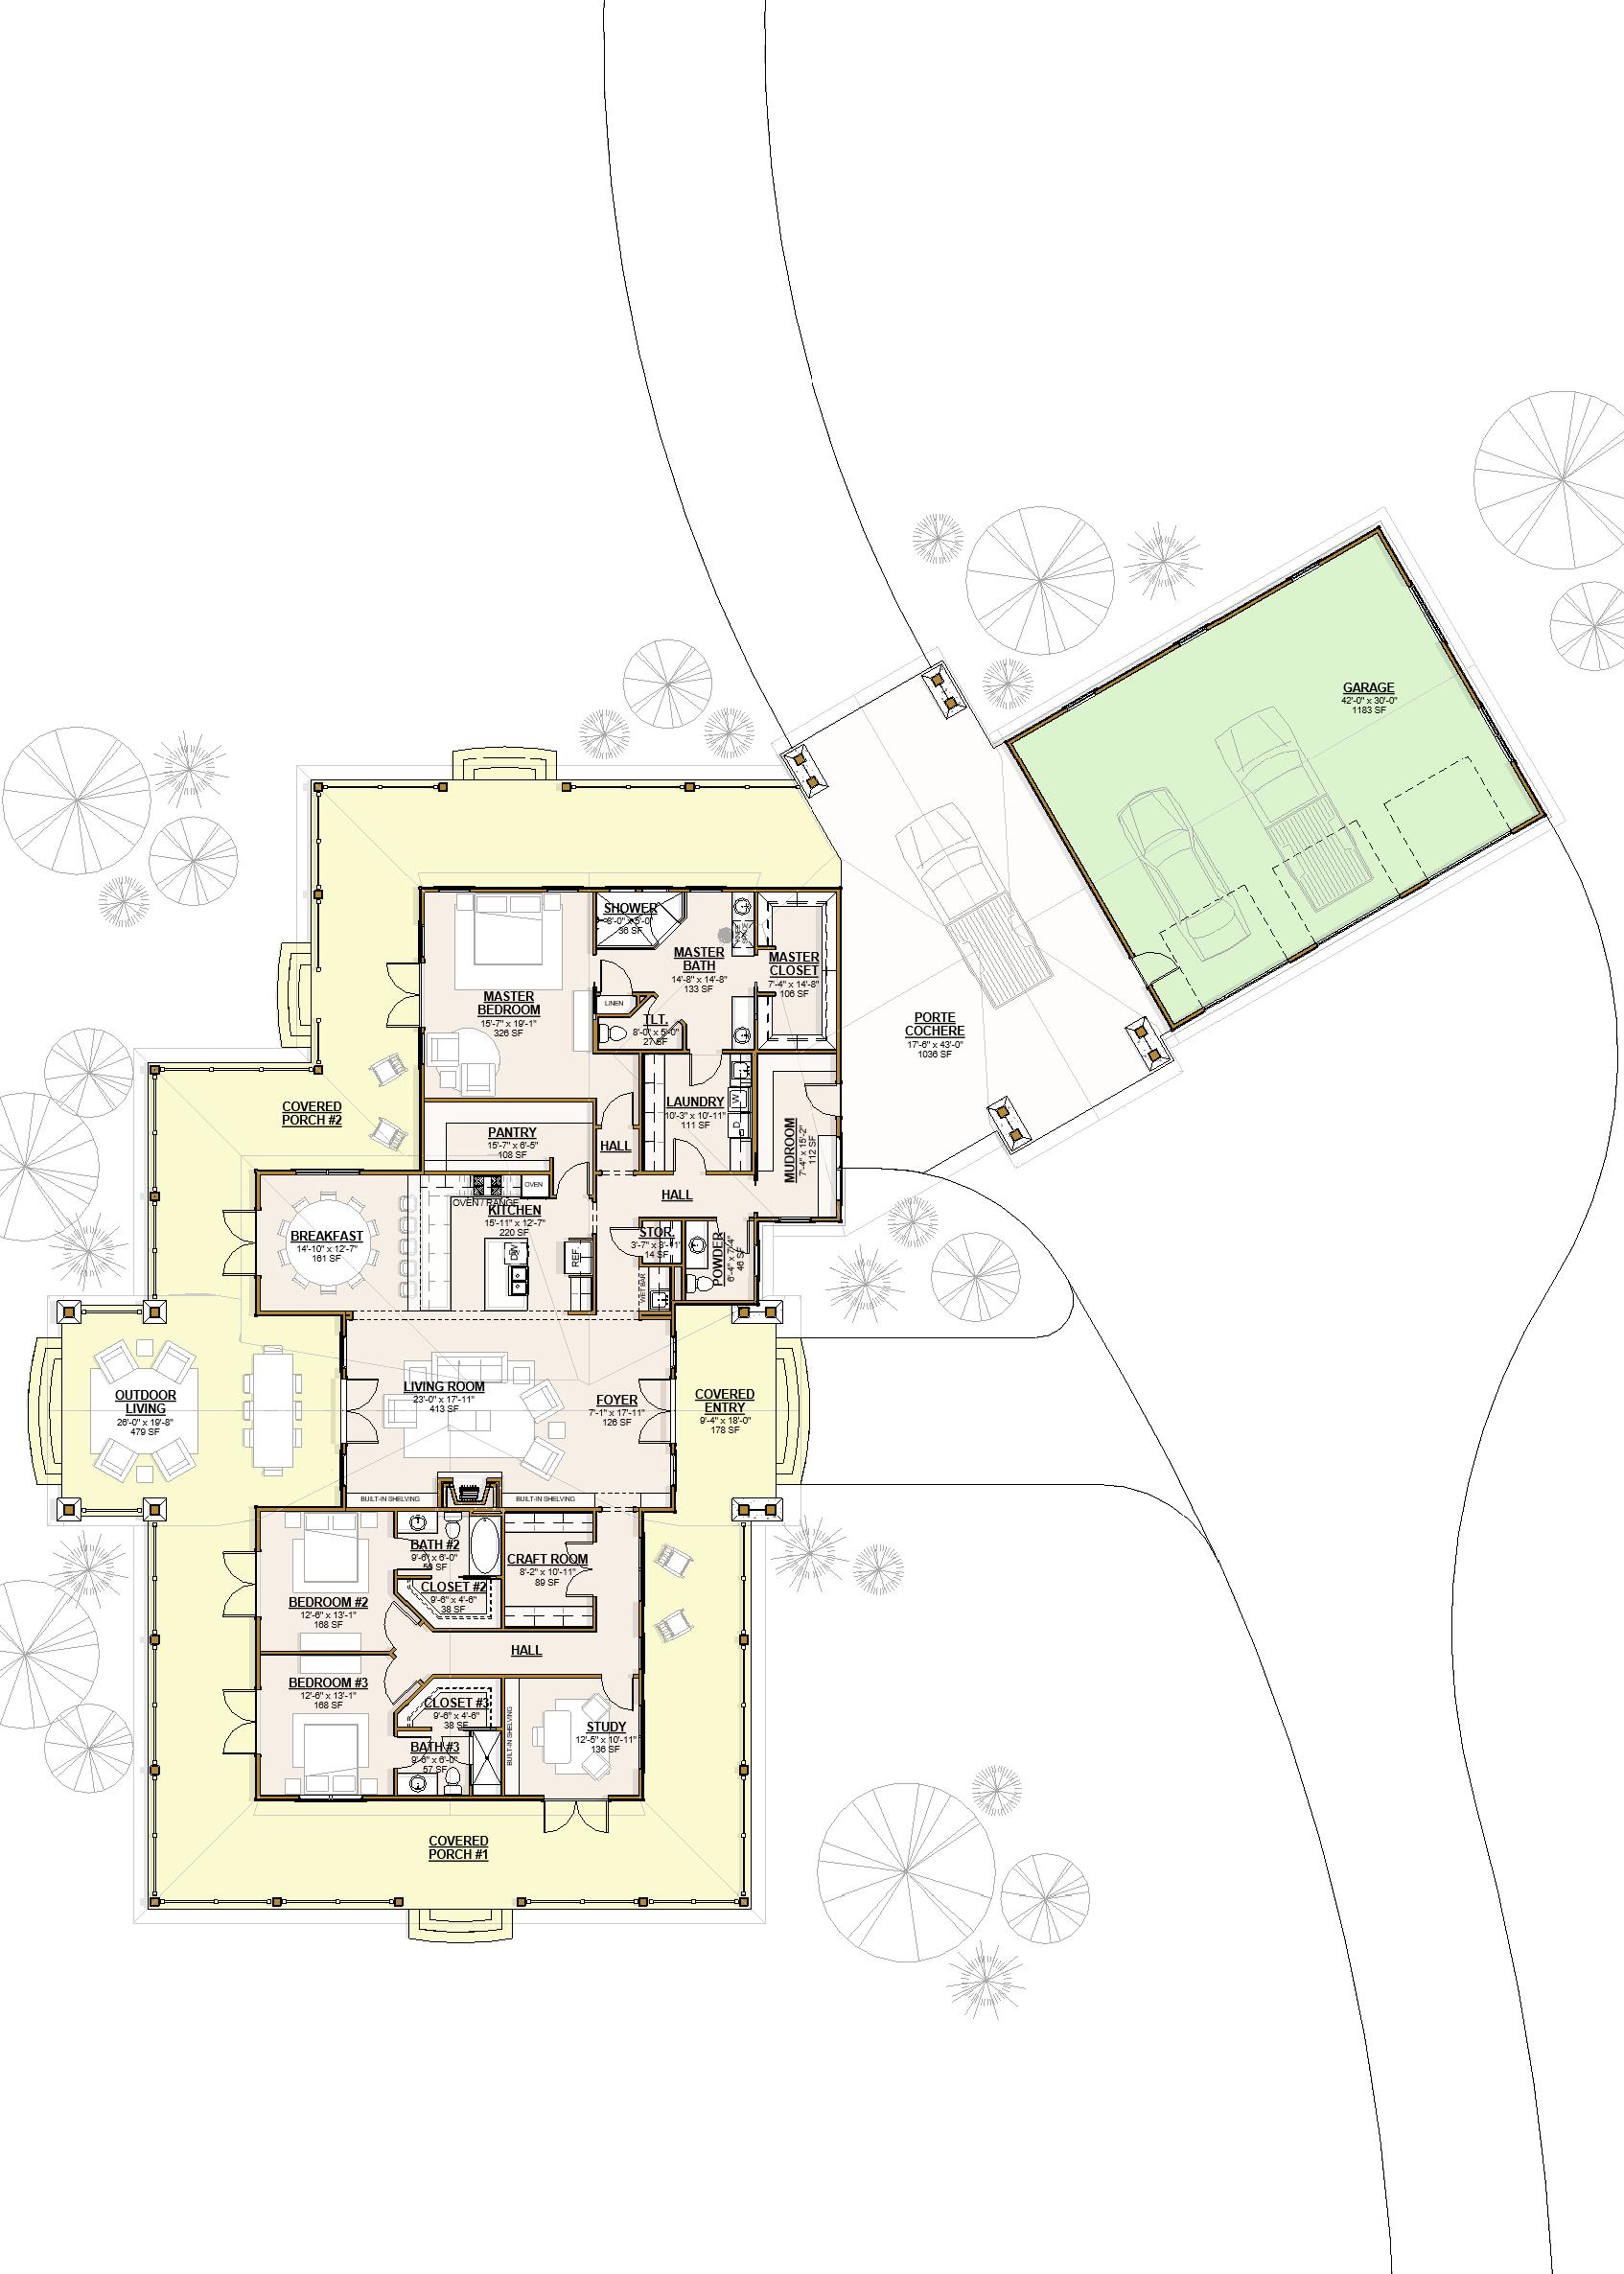 2001 - Floor Plan - Level 1 - Pres